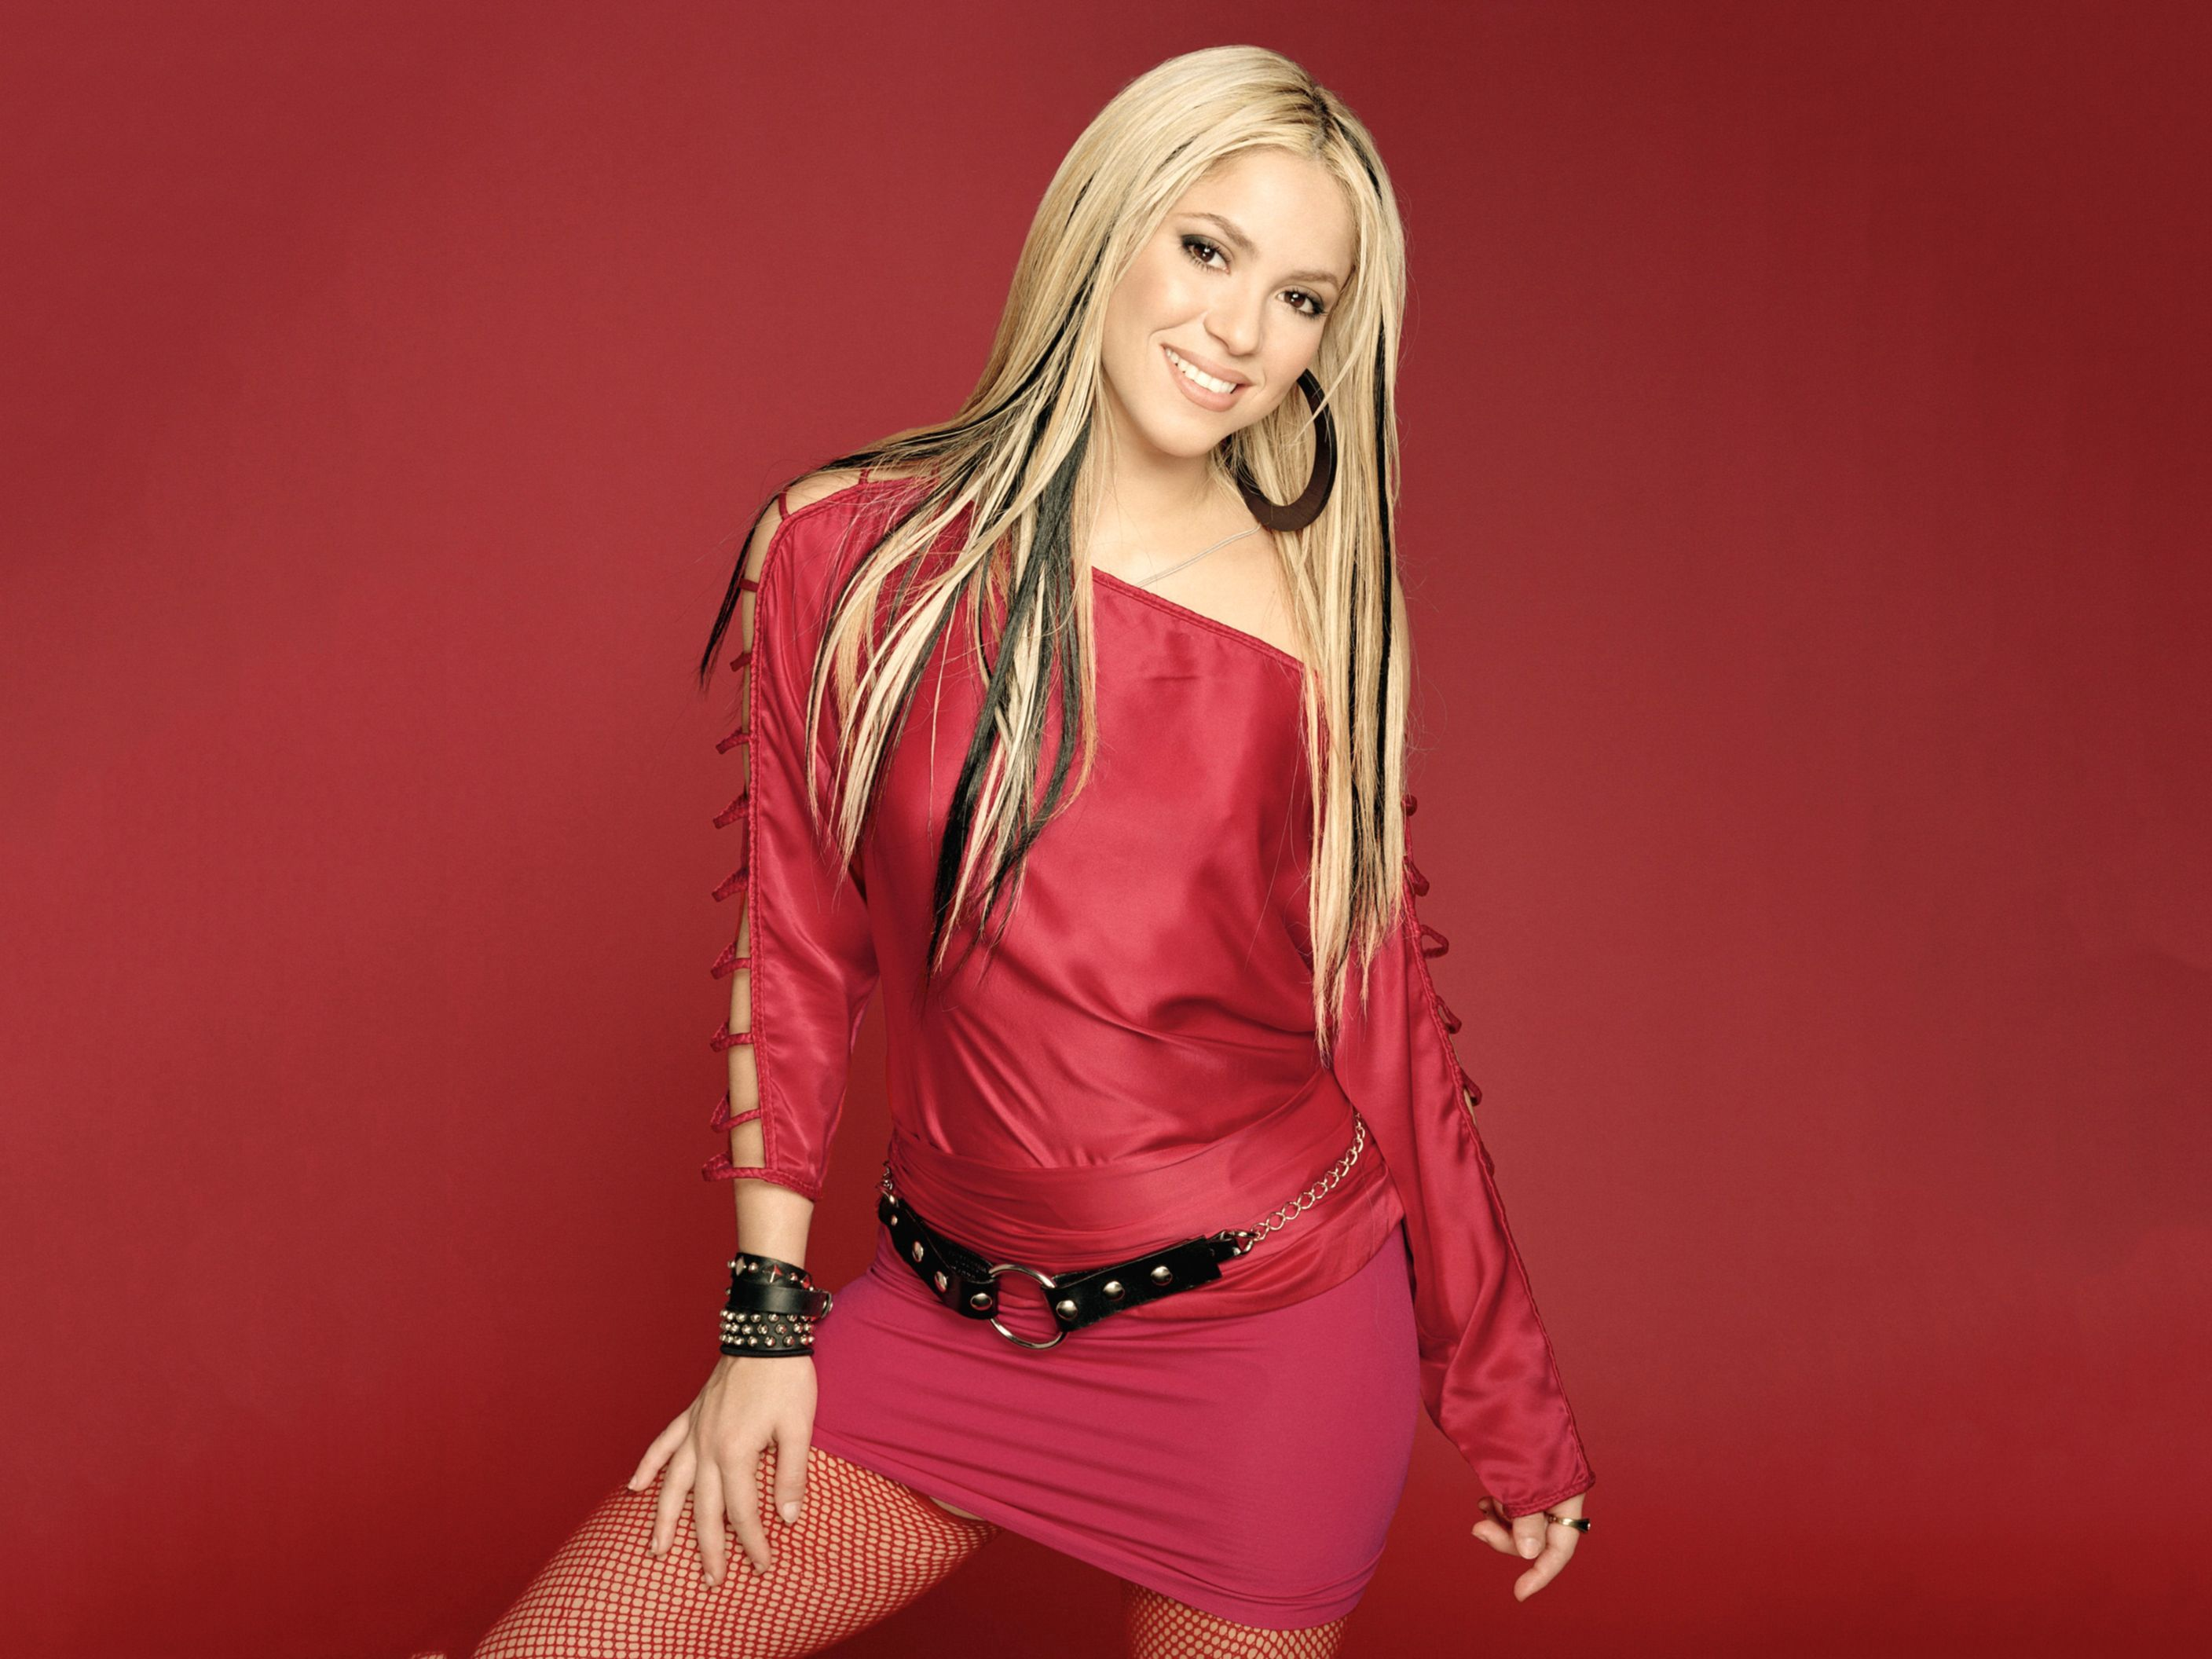 Download free HD Shakira 51 Normal Wallpaper, image